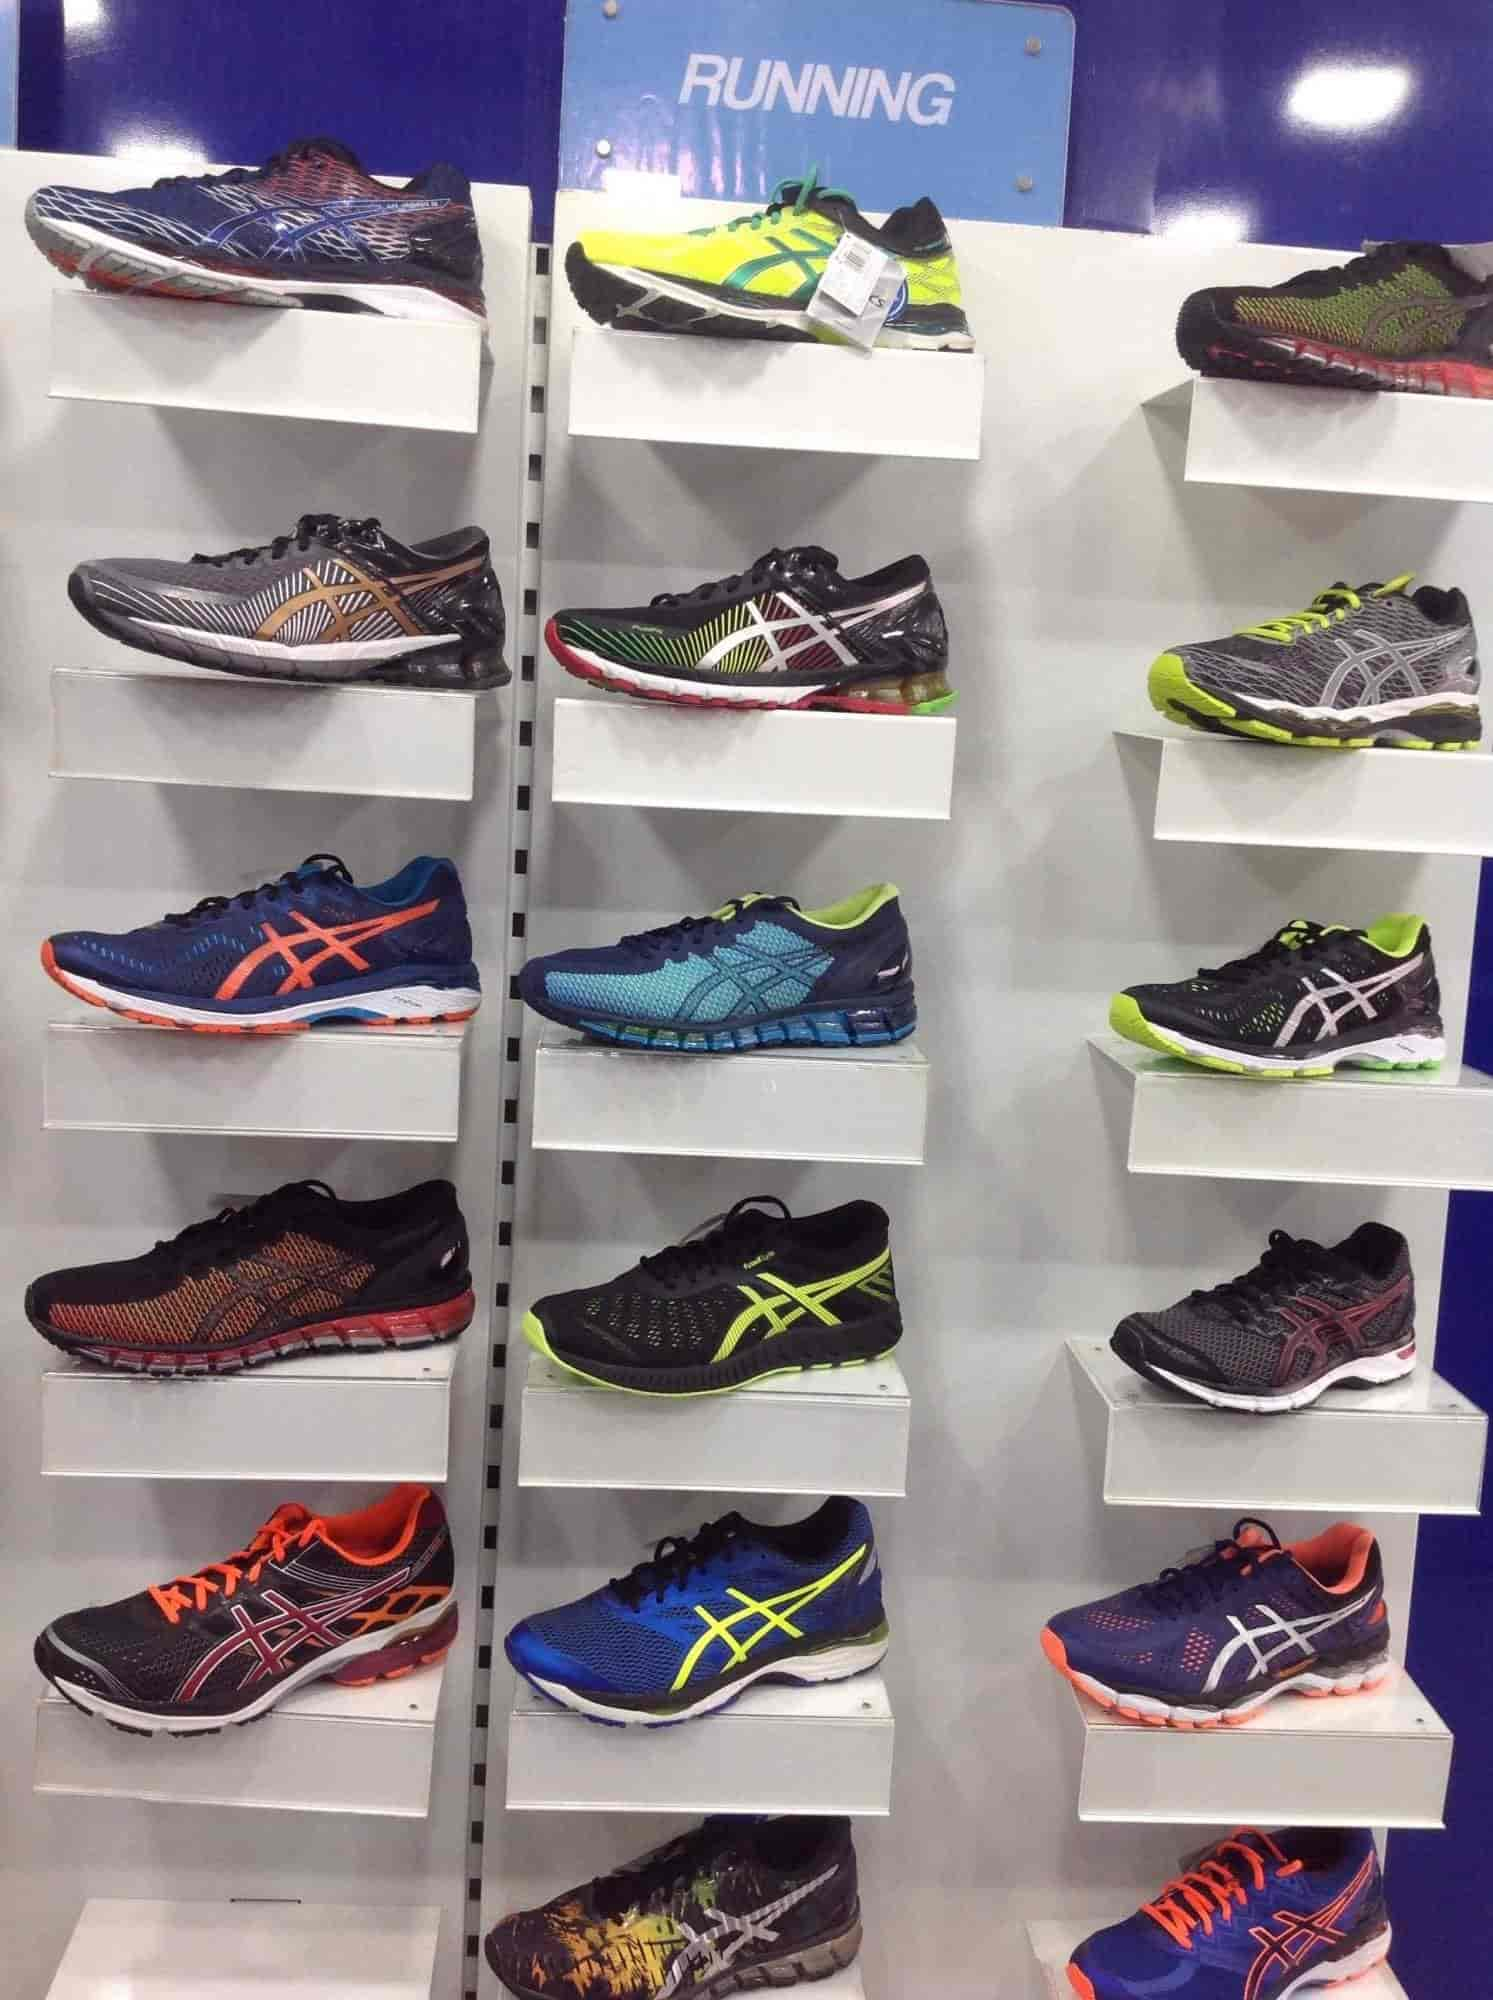 ... Shoes - Asics Store Photos, Pitampura, Delhi - Sports Shoe Dealers ...